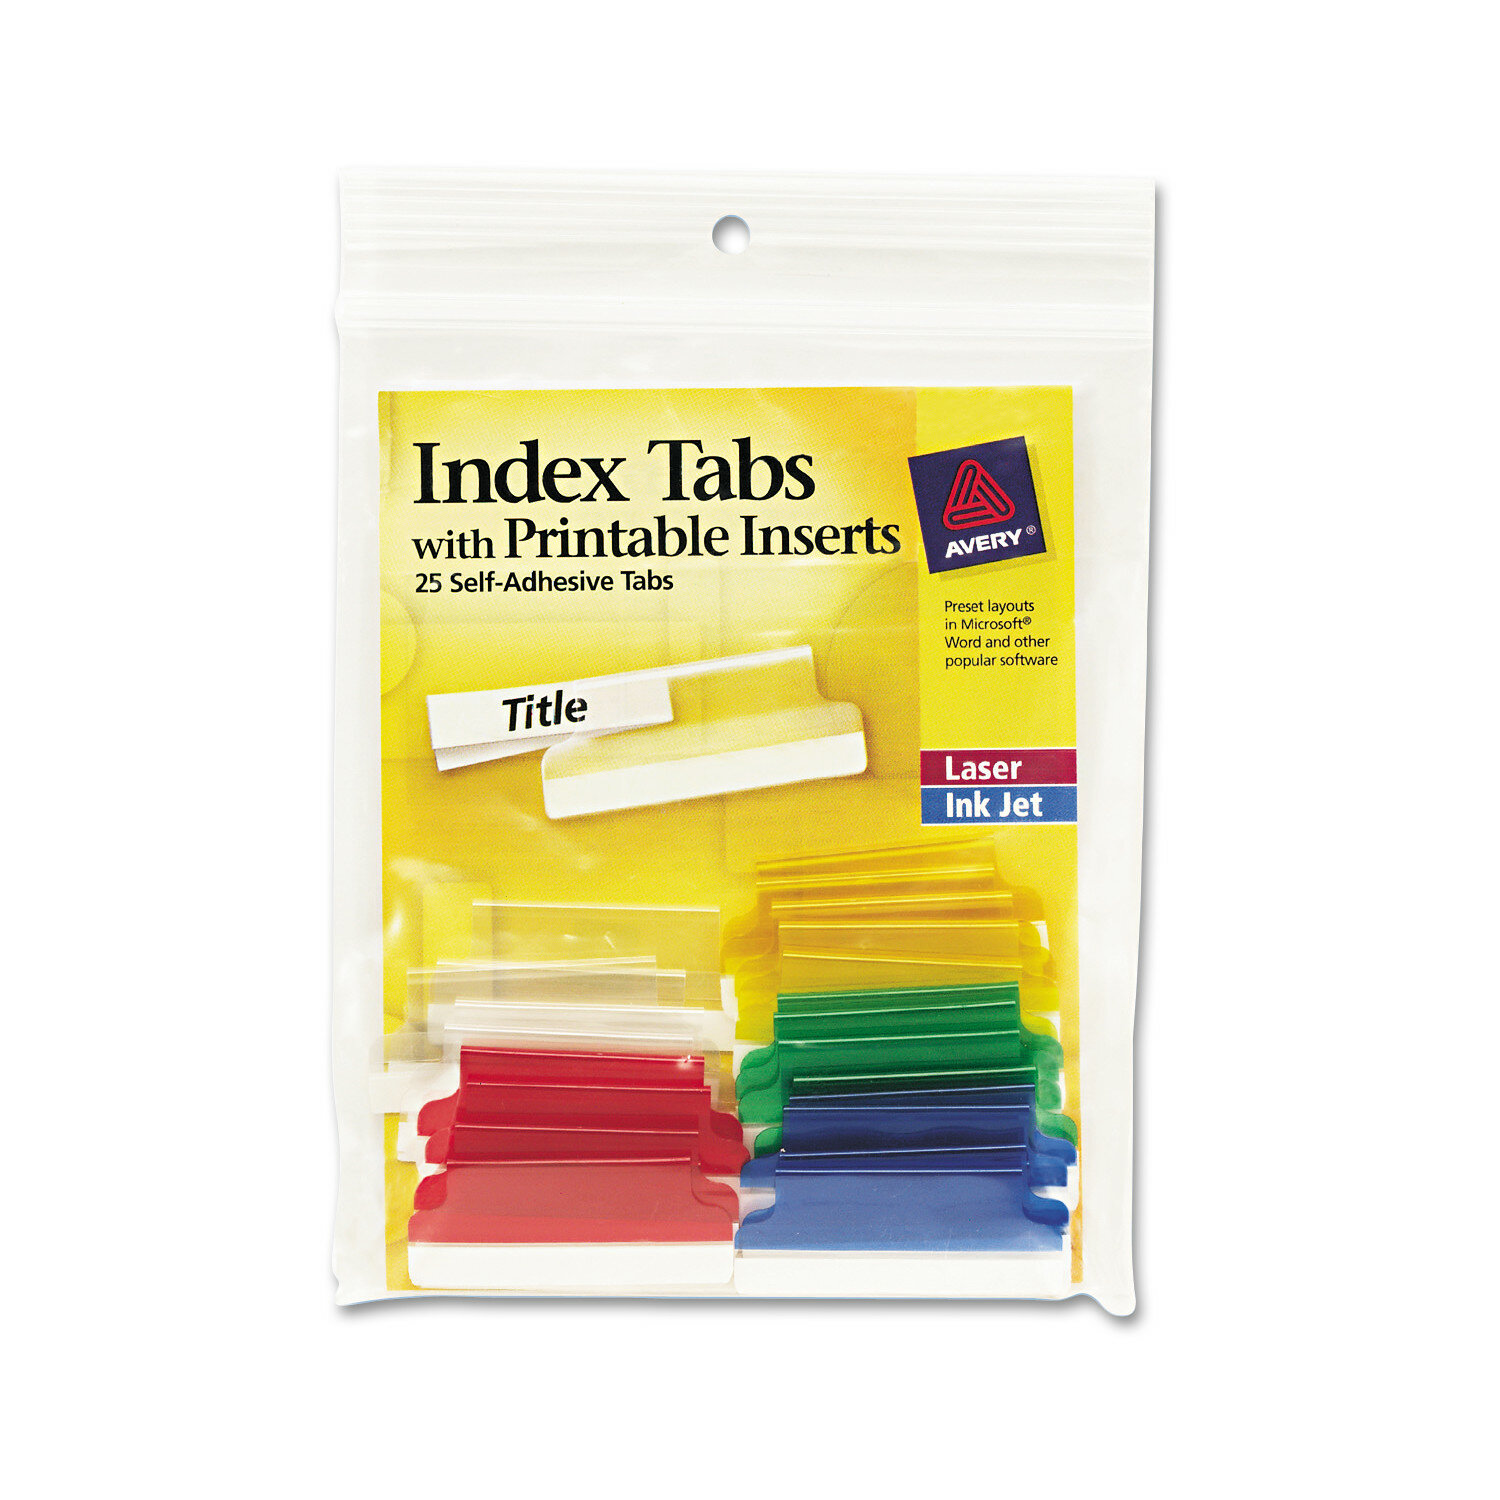 image relating to Printable Self Adhesive Tabs named Self-Adhesive Tabs with Printable Inserts (25/Pack)